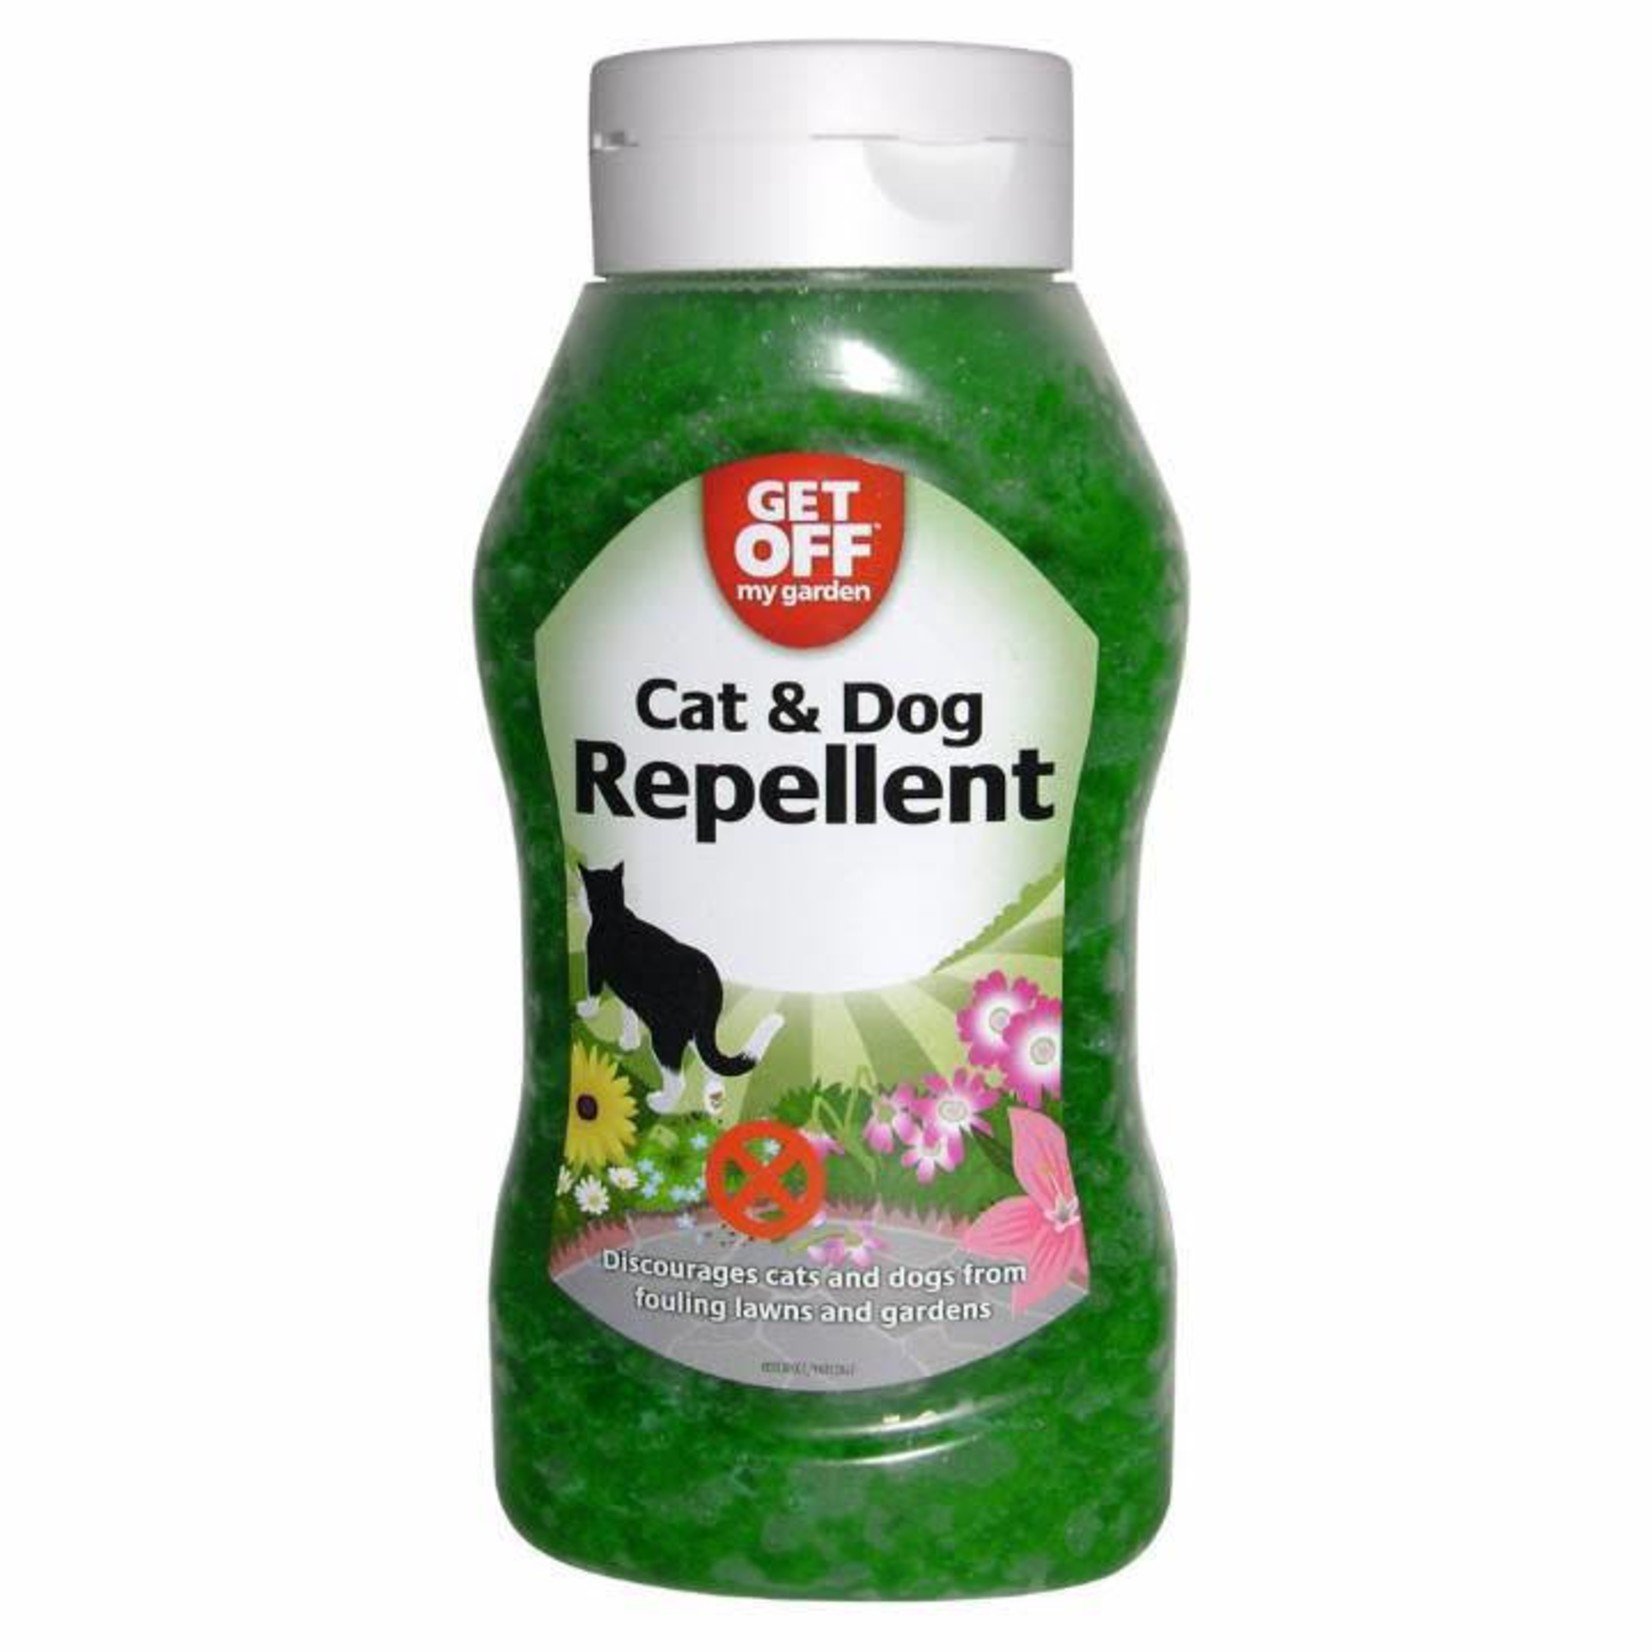 Get Off Cat and Dog Repellent Crystals, 240g